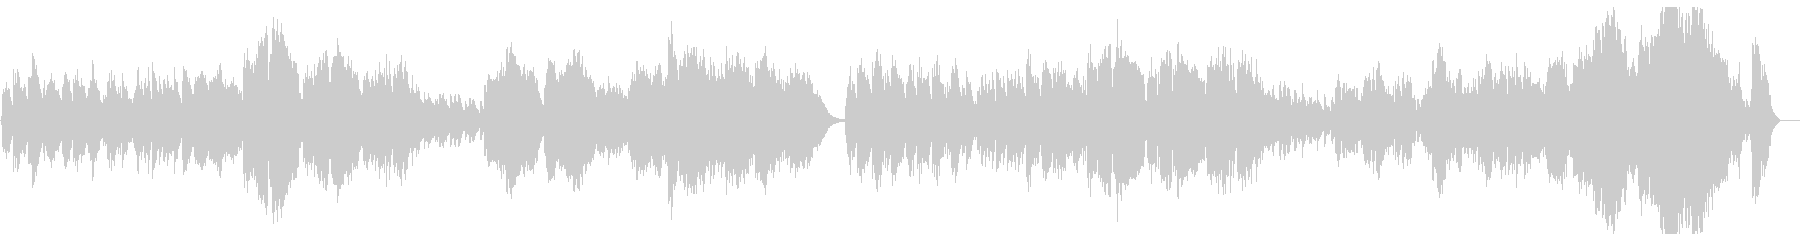 Orchestral classic pops's unreproduced waveform